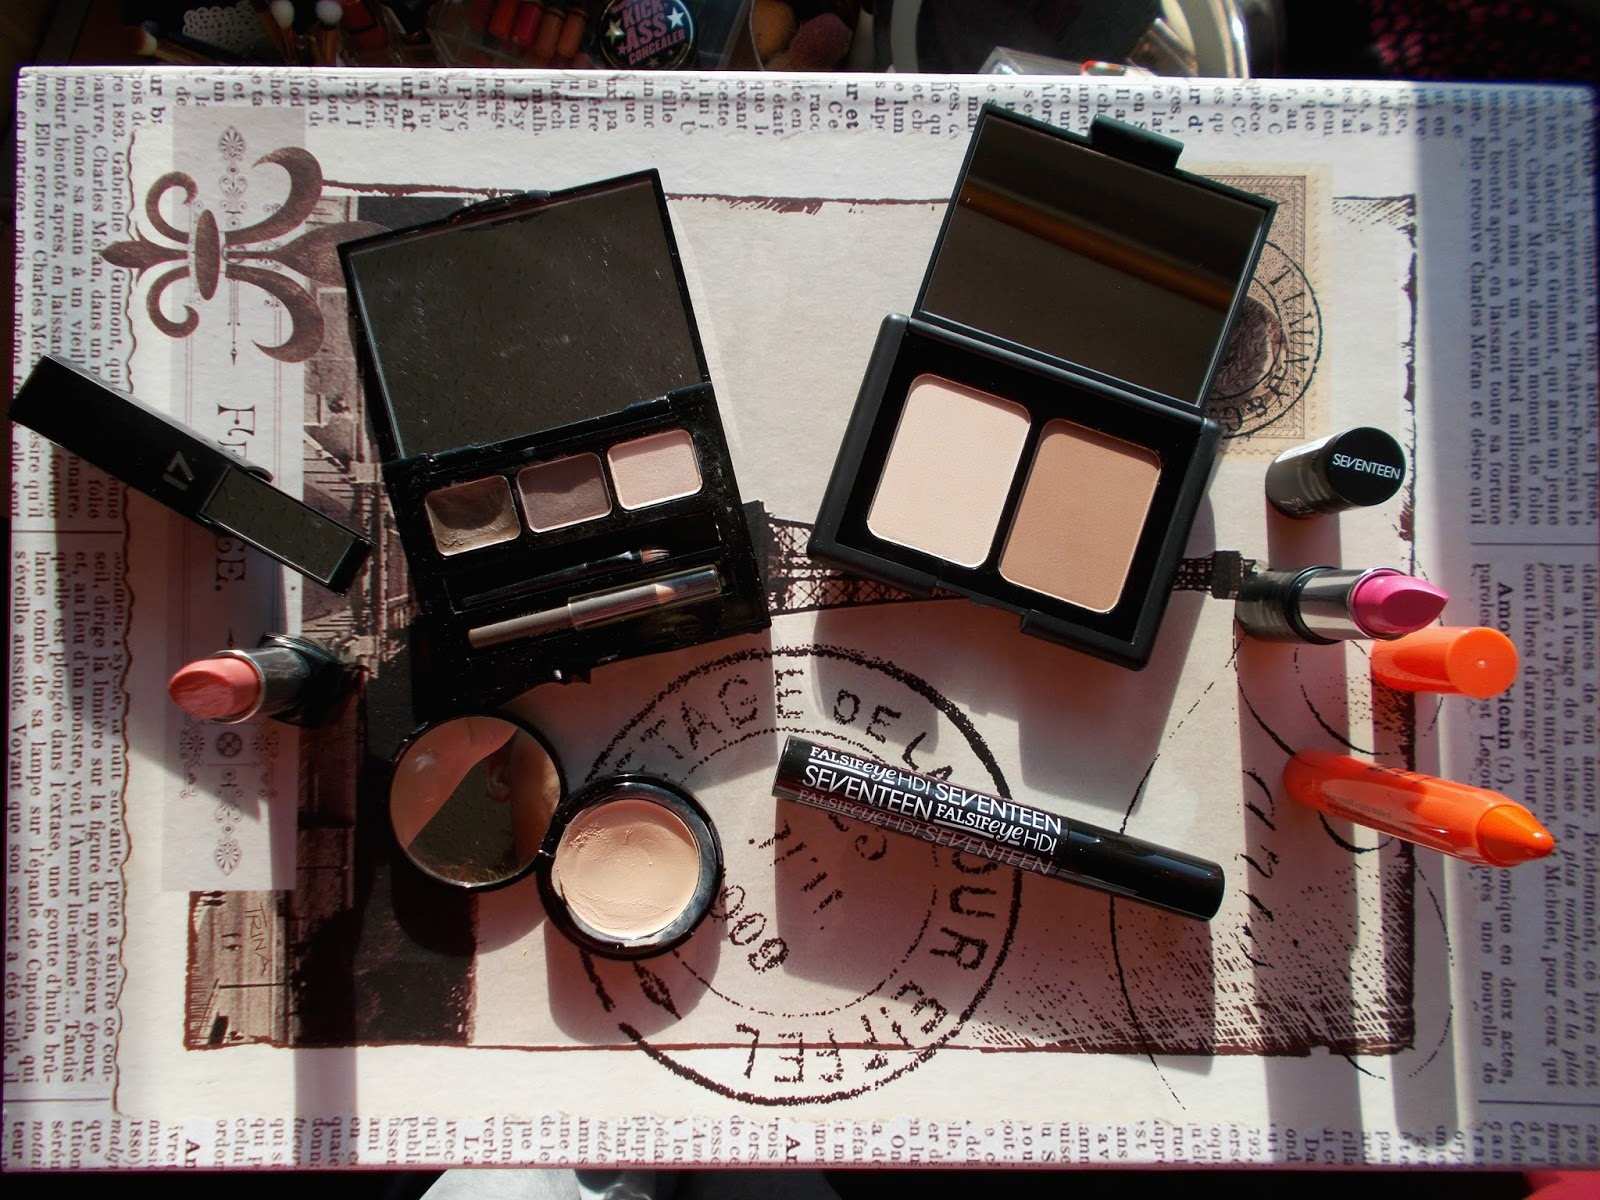 SEVENTEEN Boots favourite products makeup